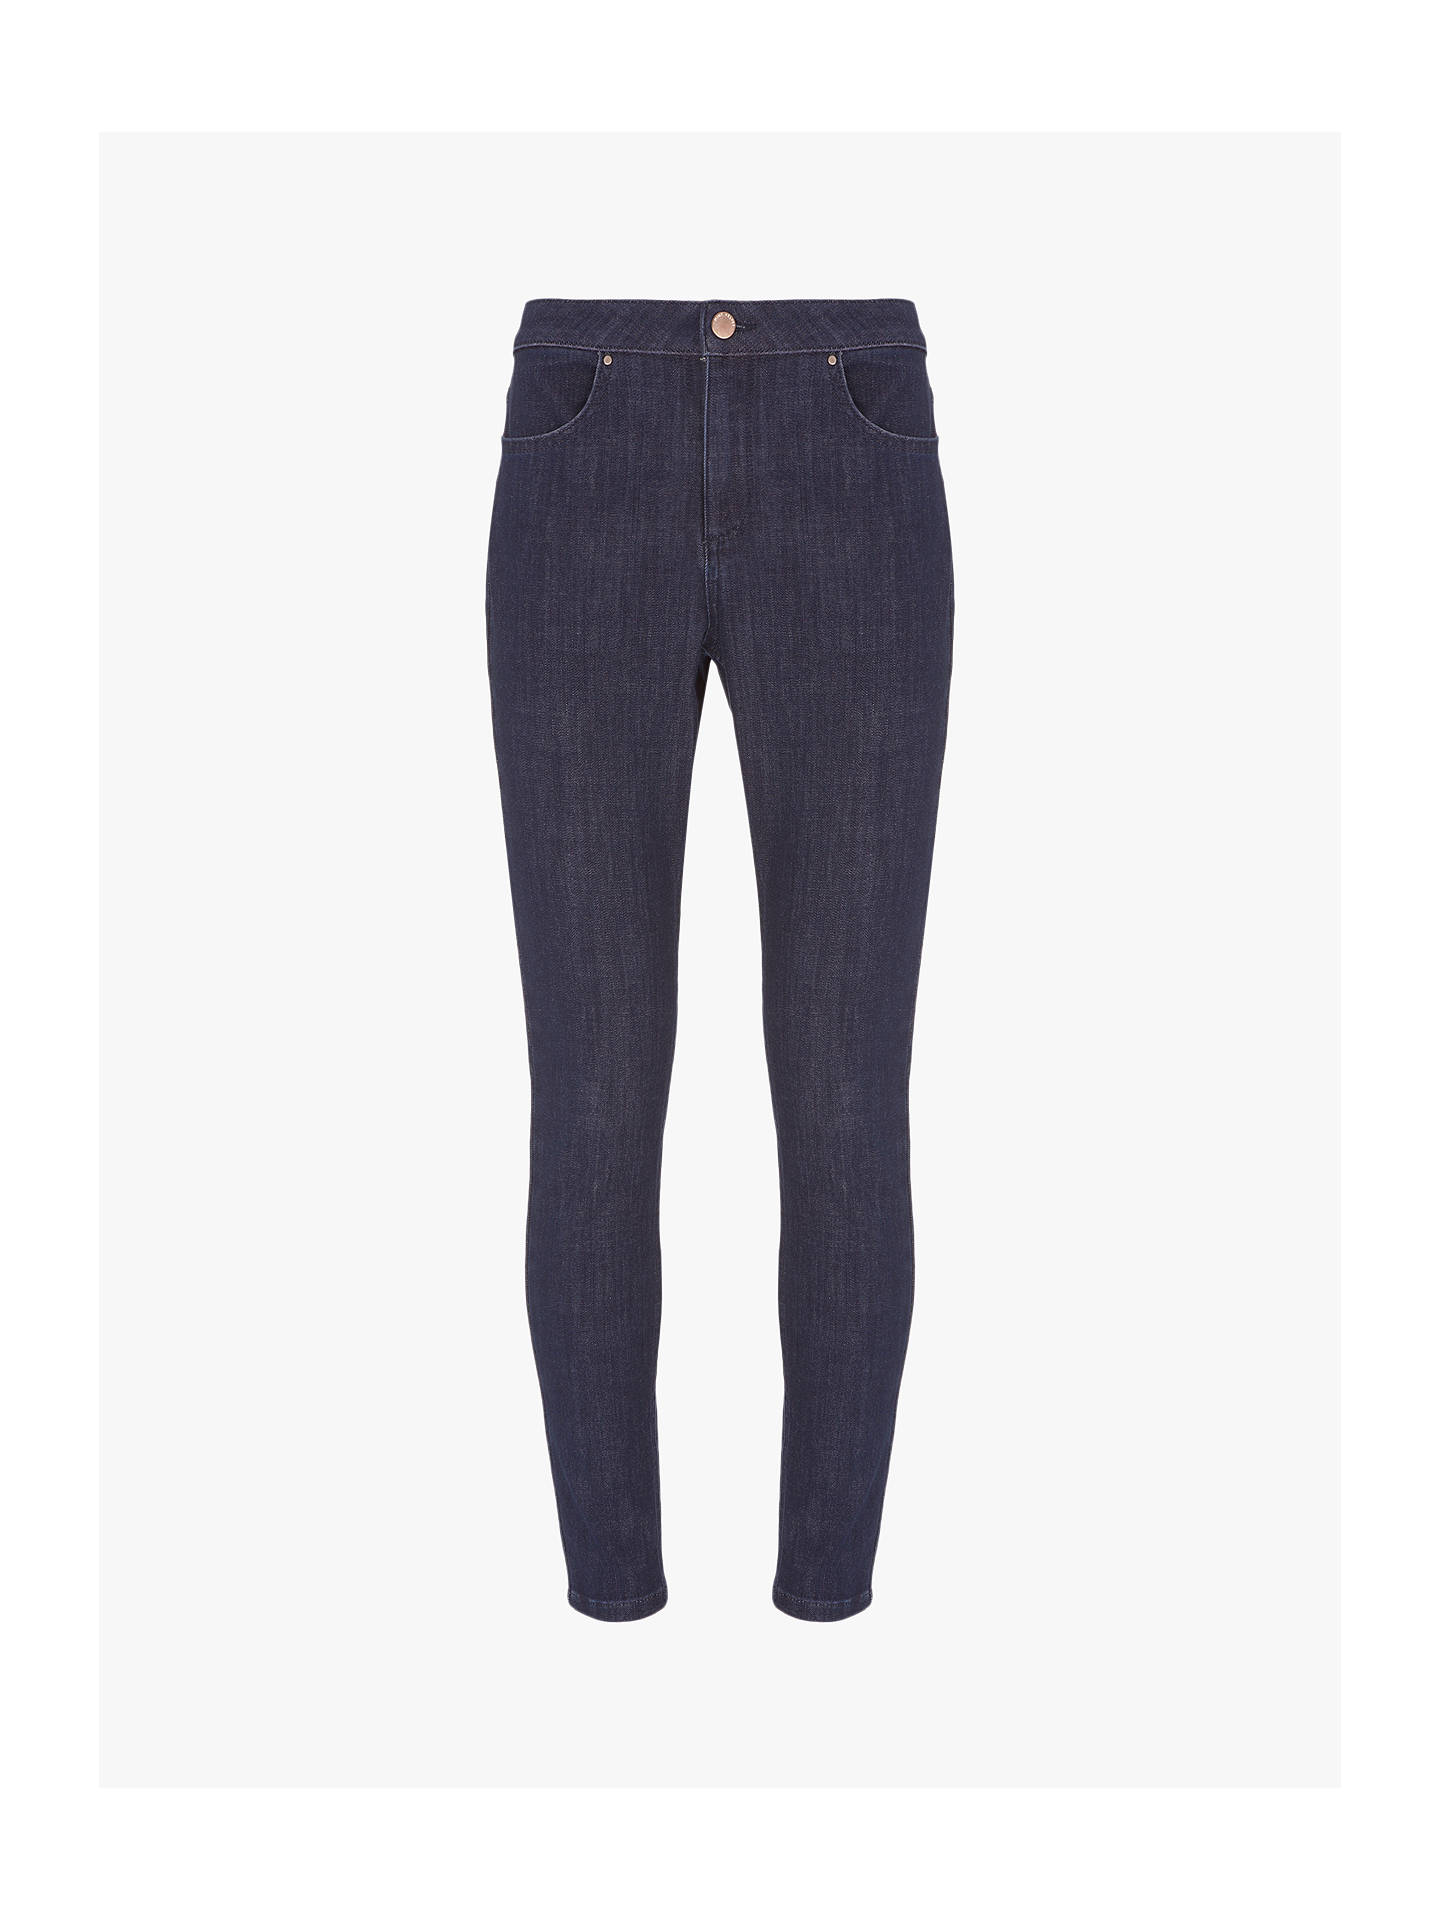 Buy Mint Velvet Atlanta Jeggings, Indigo, 14S Online at johnlewis.com